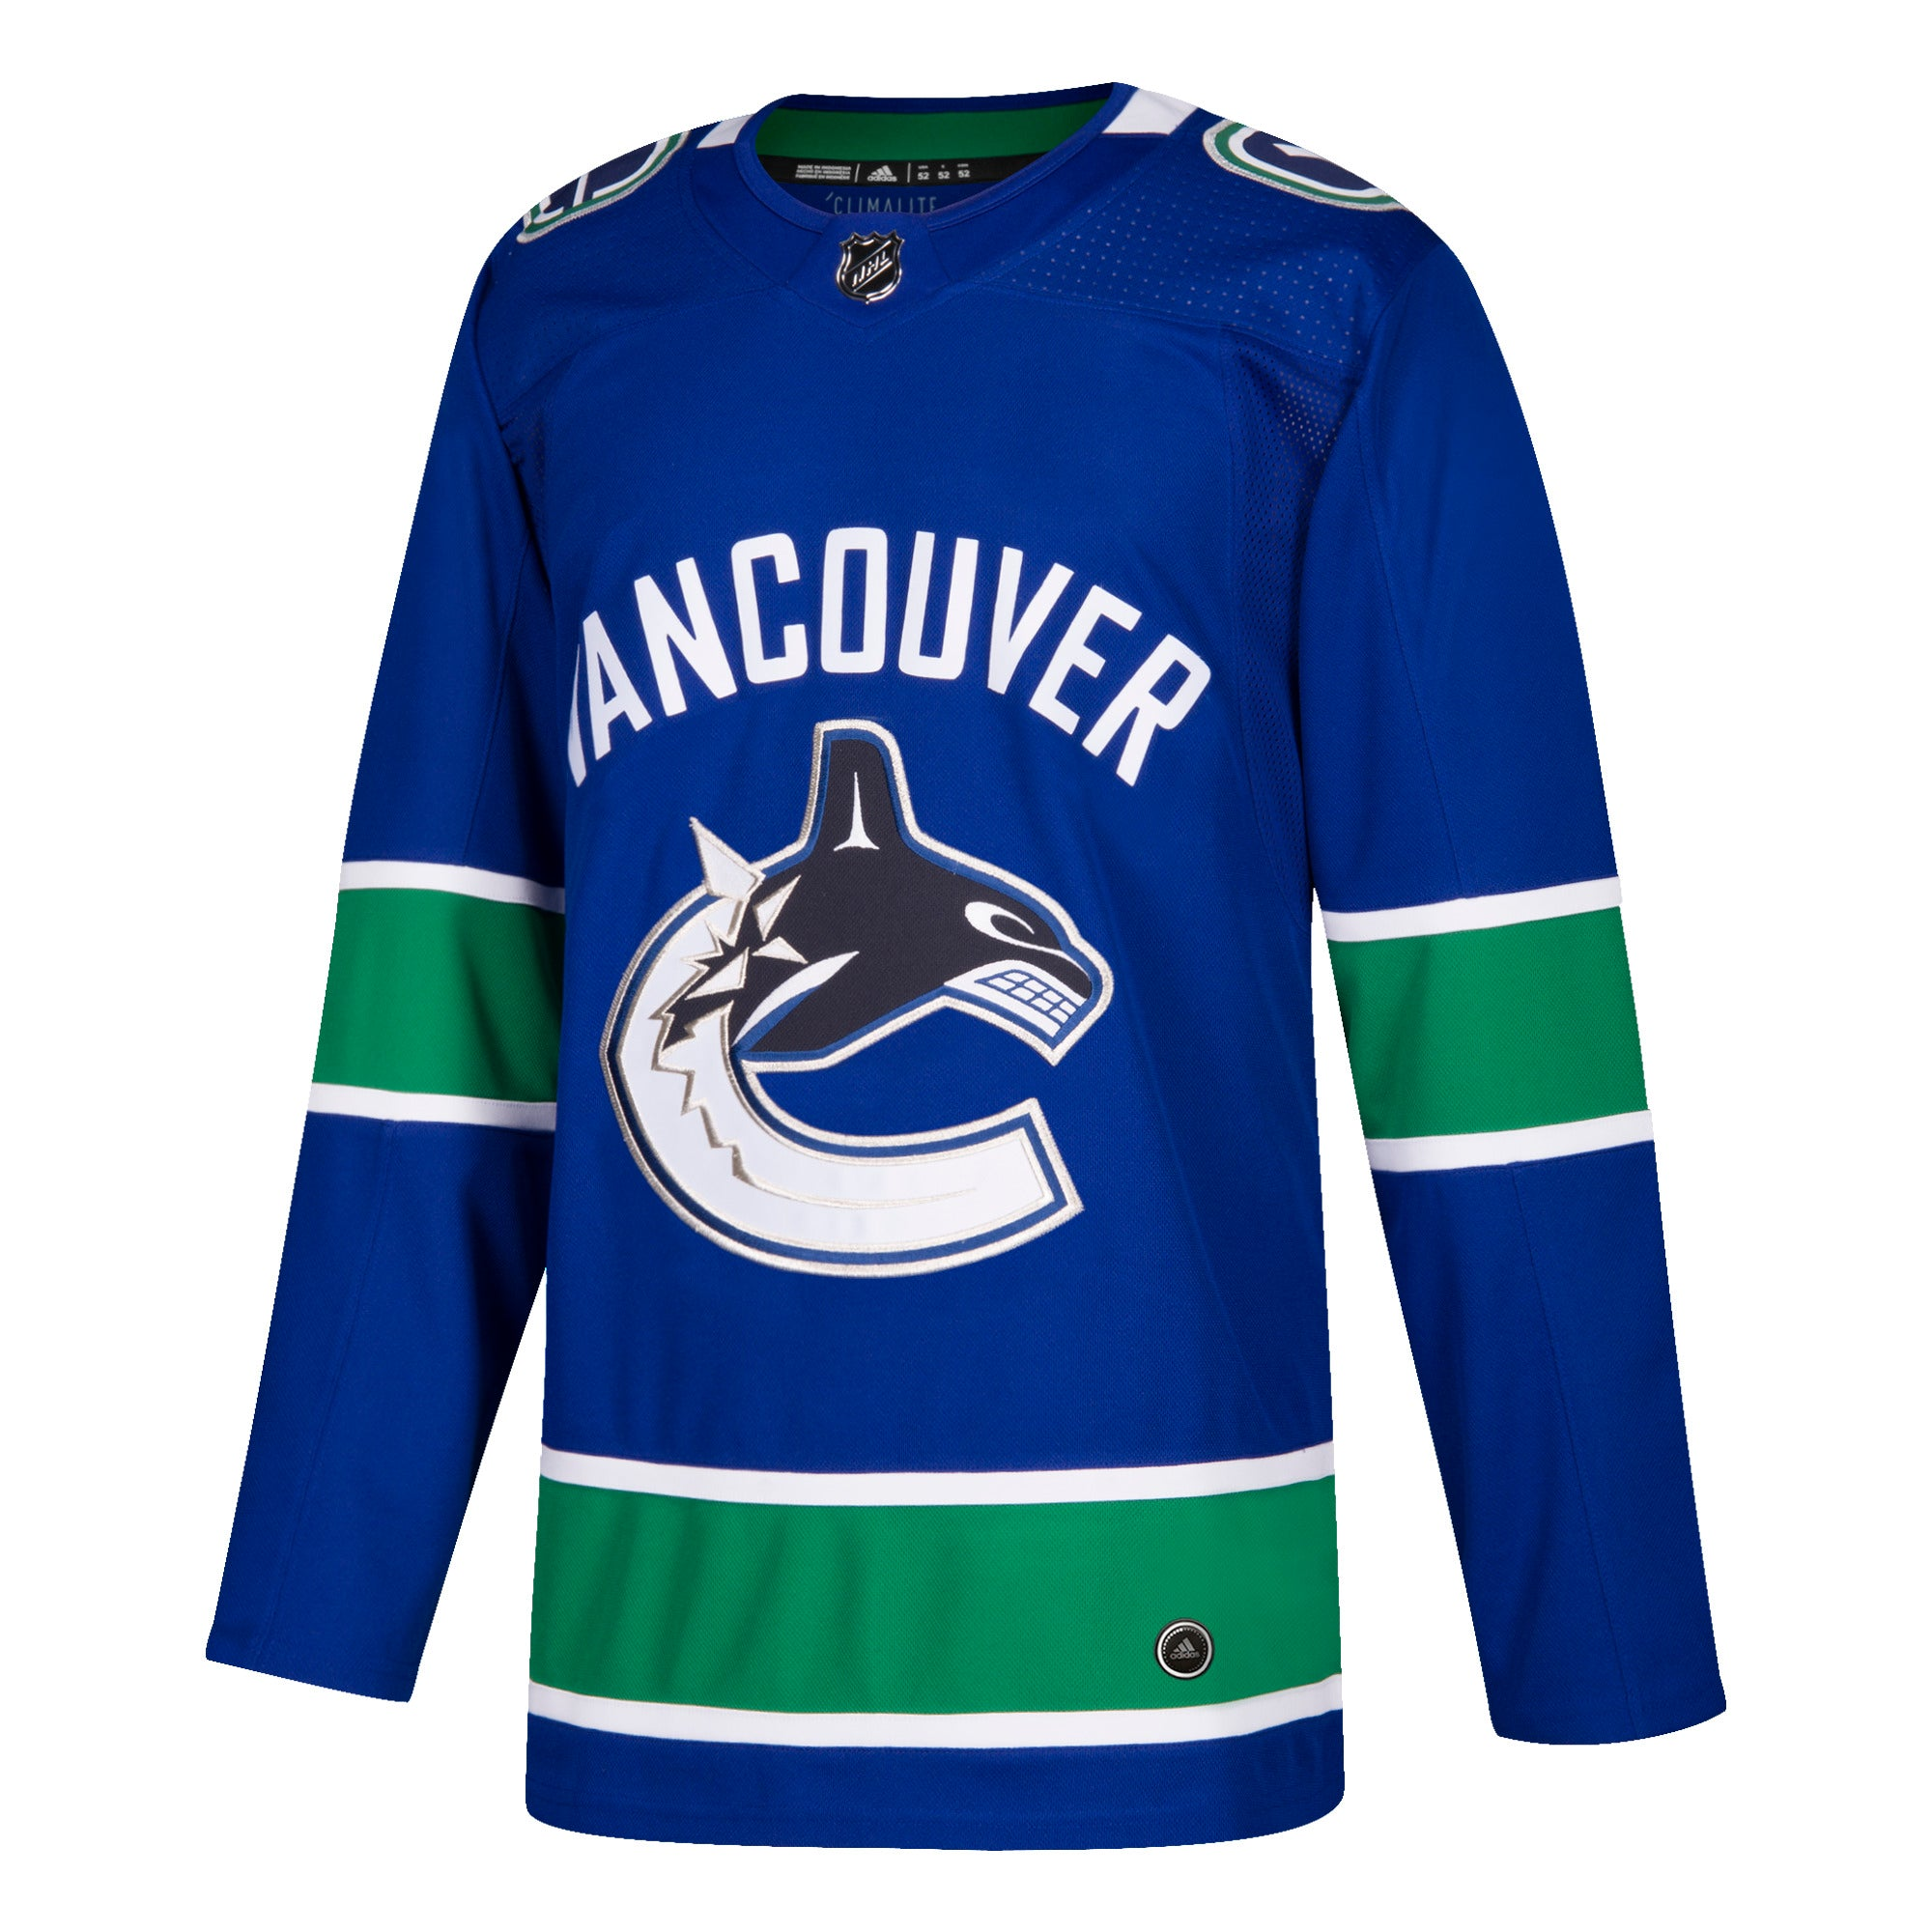 Vancouver Canucks HOME 252J Adidas NHL Authentic Pro Jersey